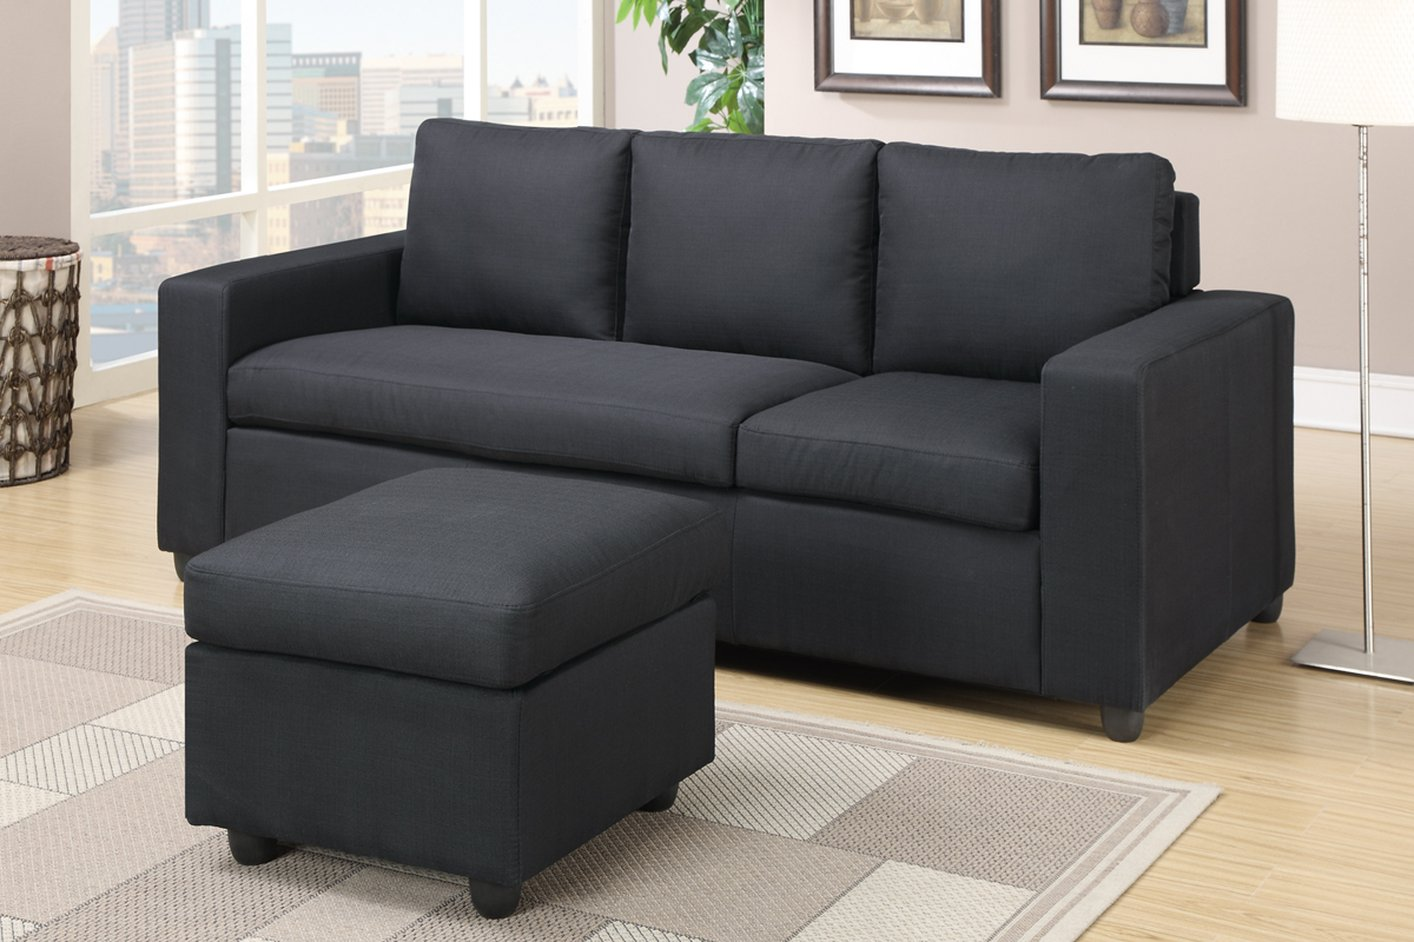 Poundex Akeneo F7490 Black Fabric Sectional Sofa Steal A Sofa Furniture Outlet Los Angeles Ca